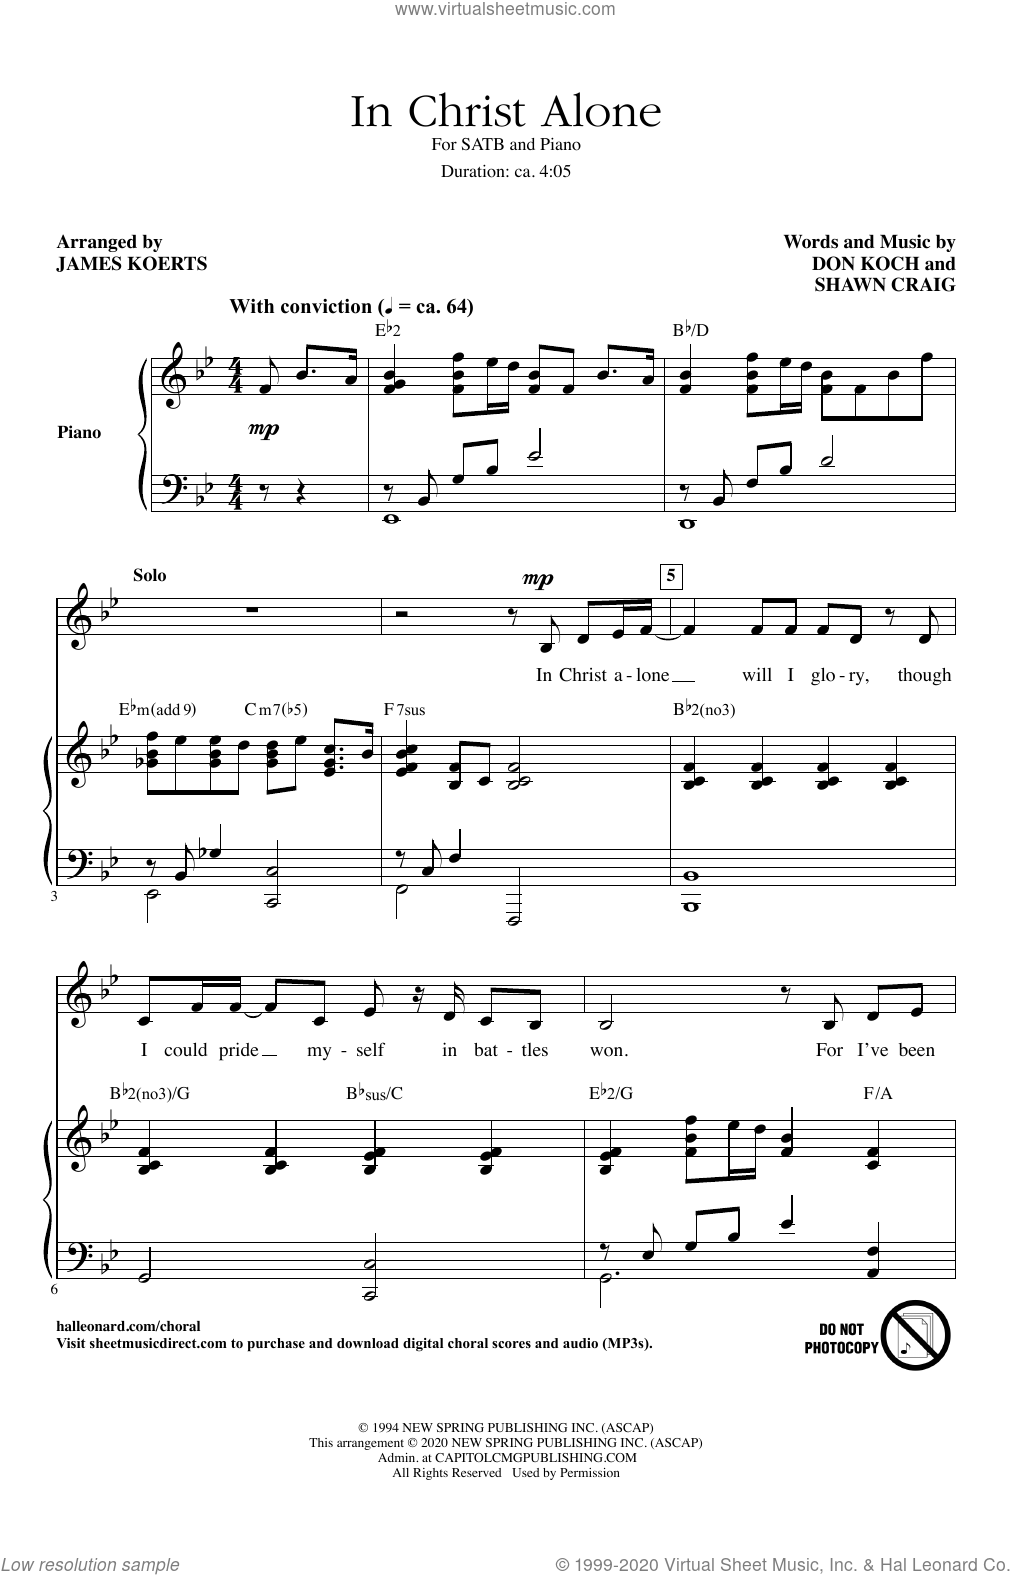 In Christ Alone (arr. James Koerts) sheet music for choir (SATB: soprano, alto, tenor, bass) by Michael English, James Koerts, Don Koch and Shawn Craig, intermediate skill level